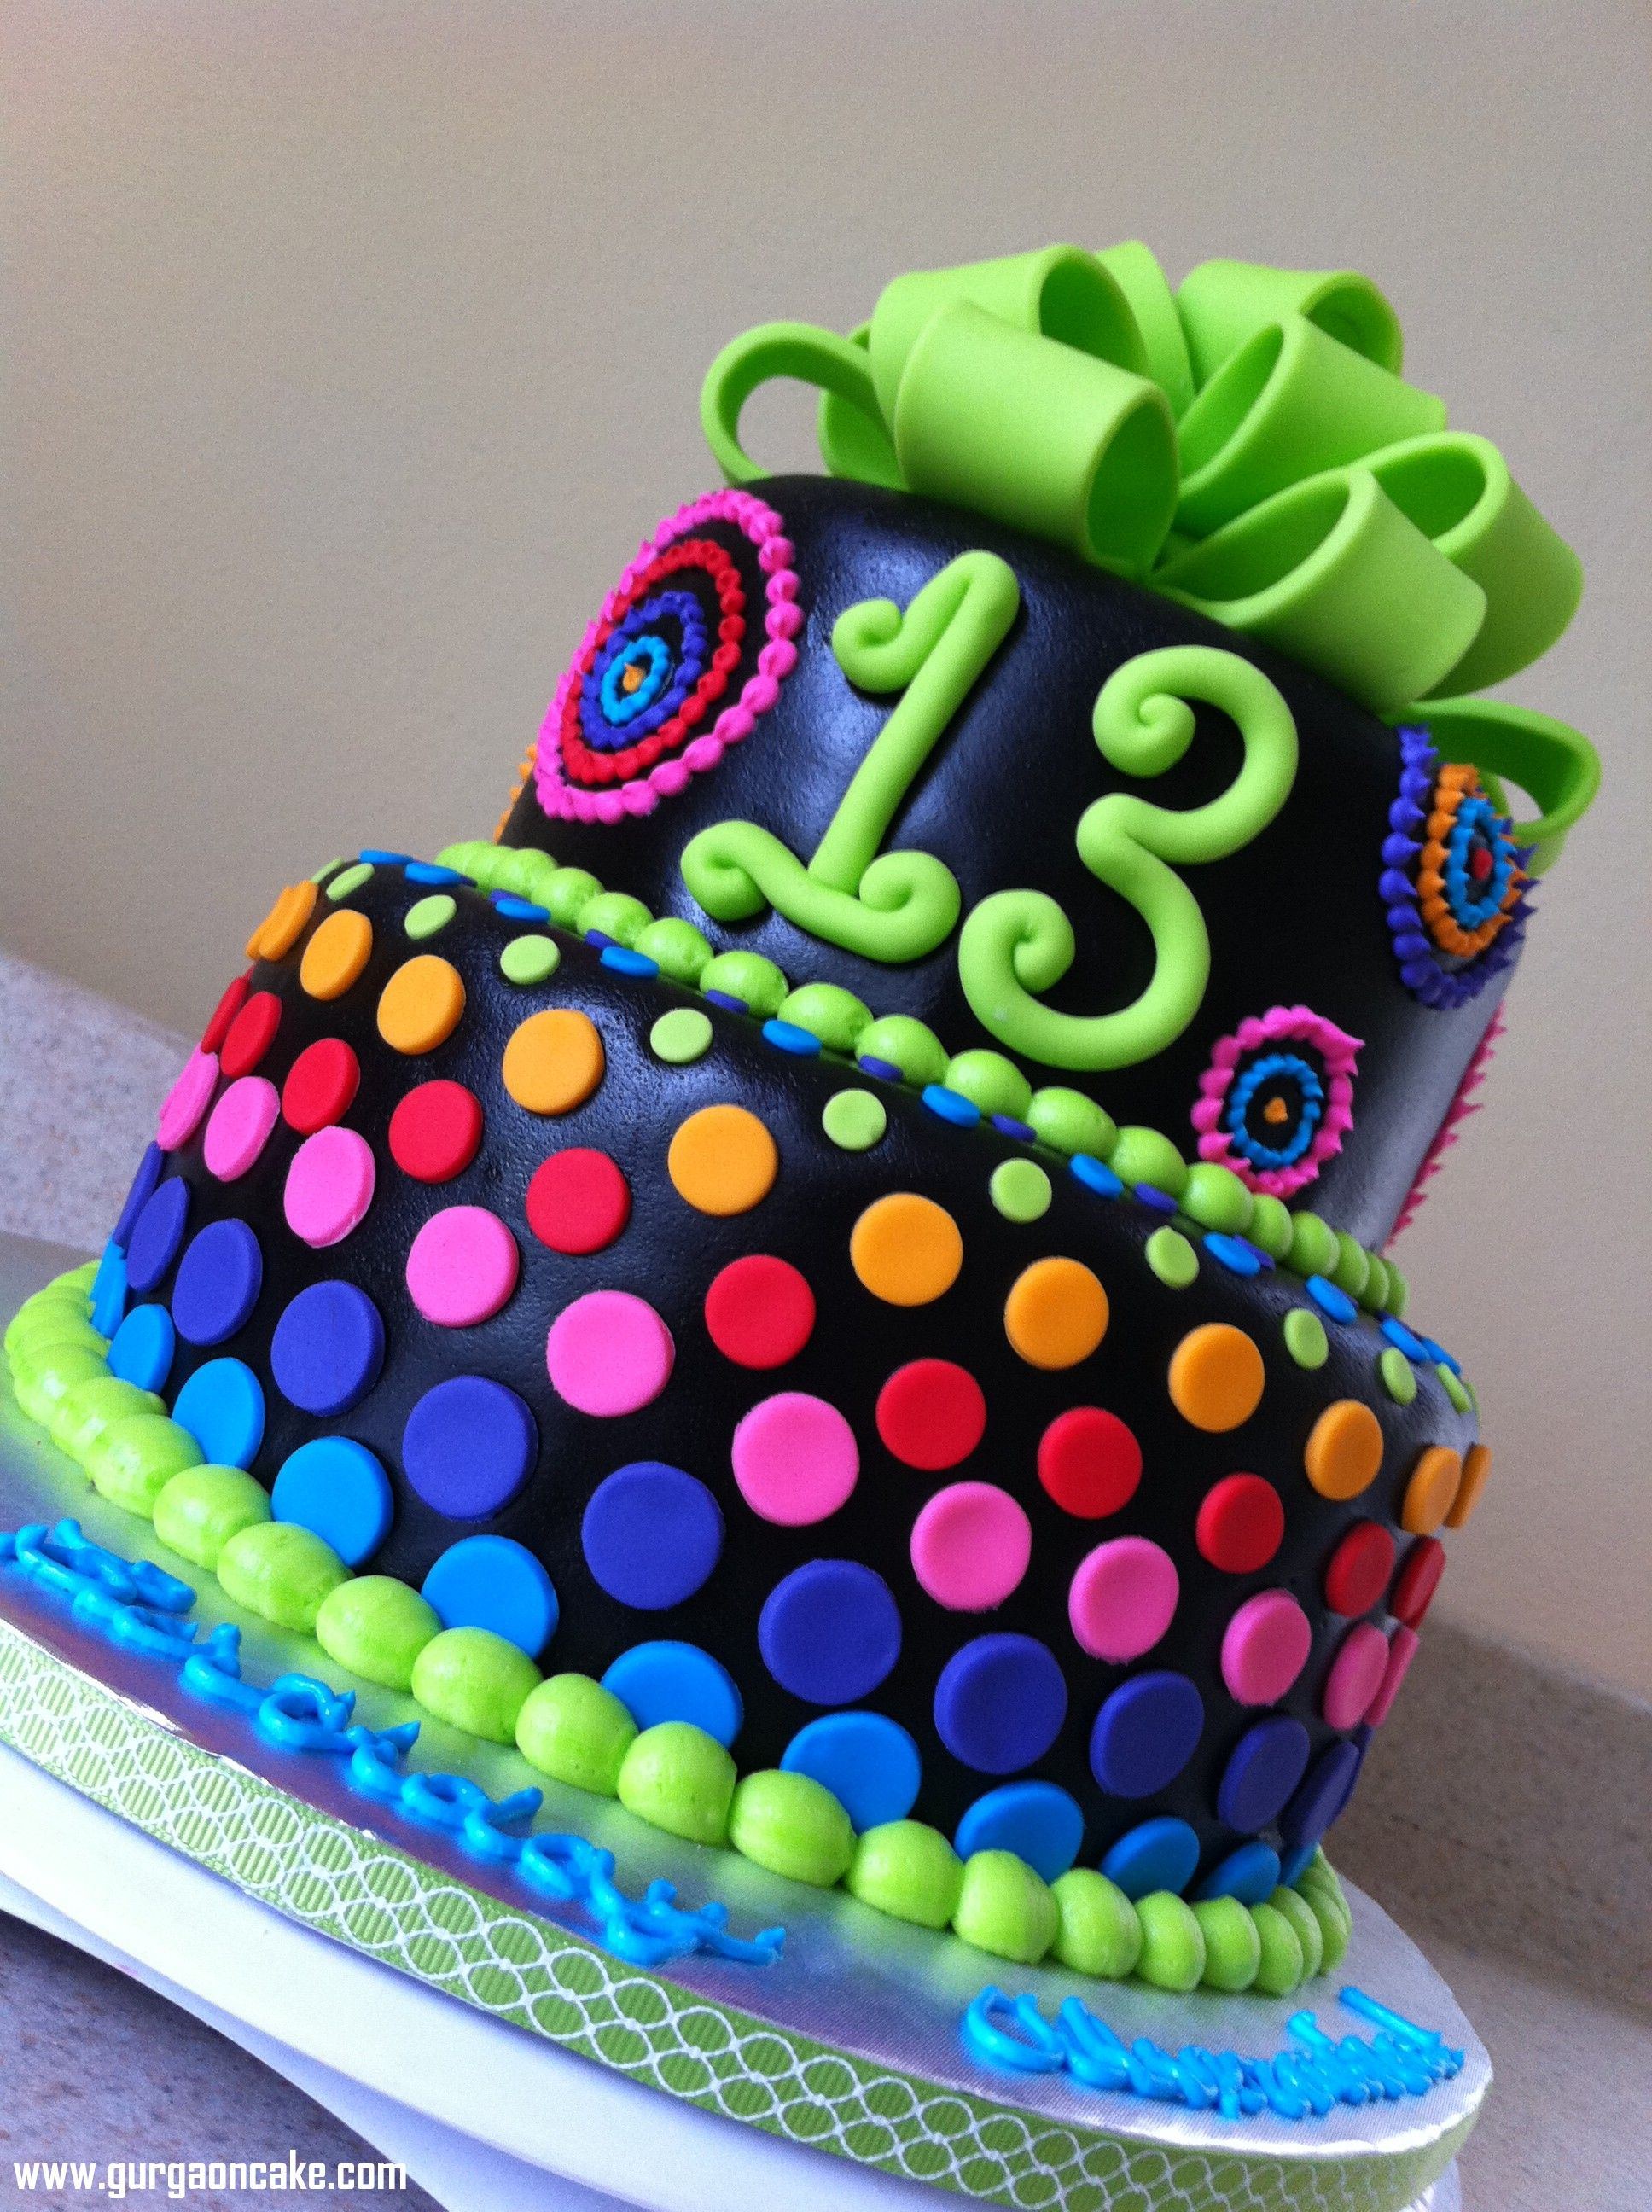 th Birthday Cake Ideas Birthday Cake Pinterest Birthday cakes